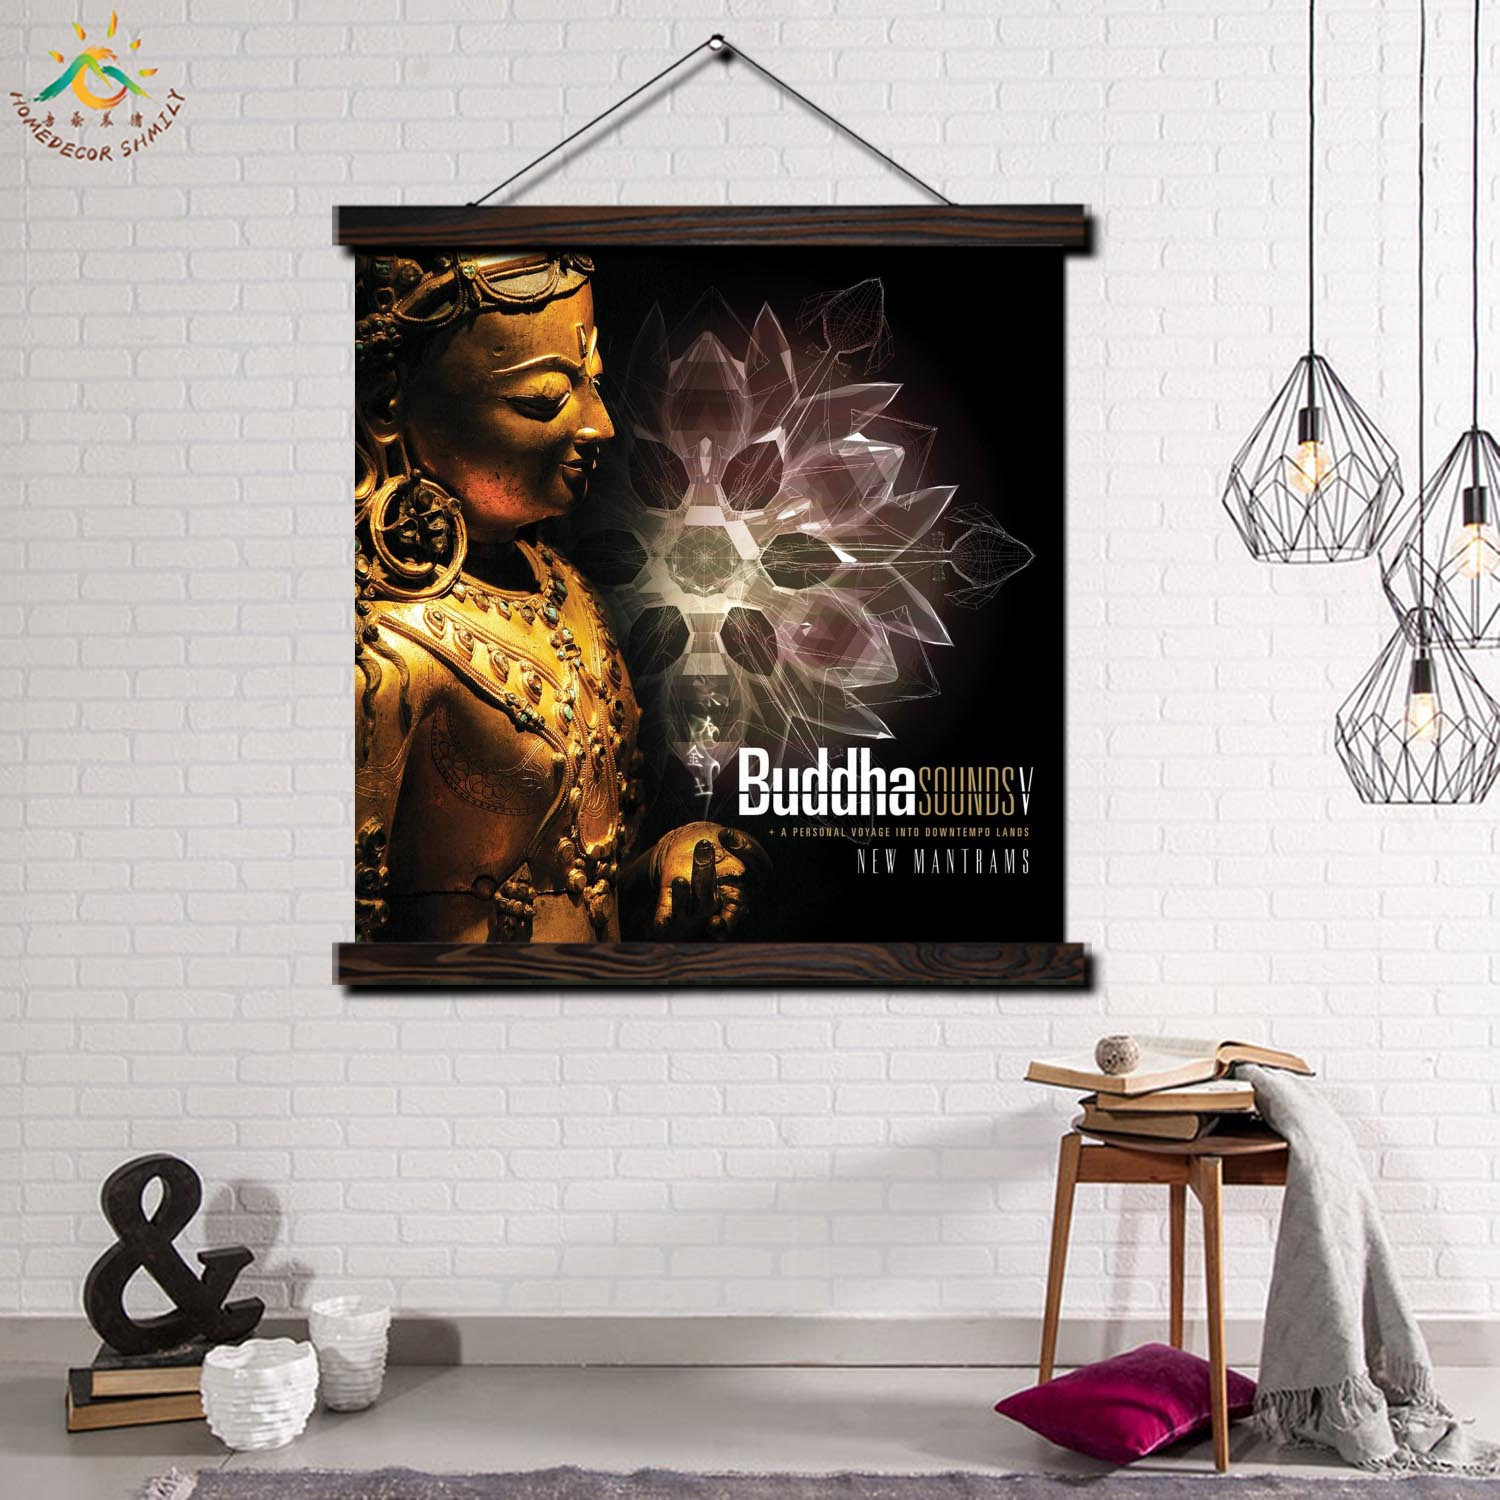 Tradition Buddha Single Modern Wall Art Print Pop Picture And Poster Solid Wood Hanging Scroll Canvas Painting Home Decor